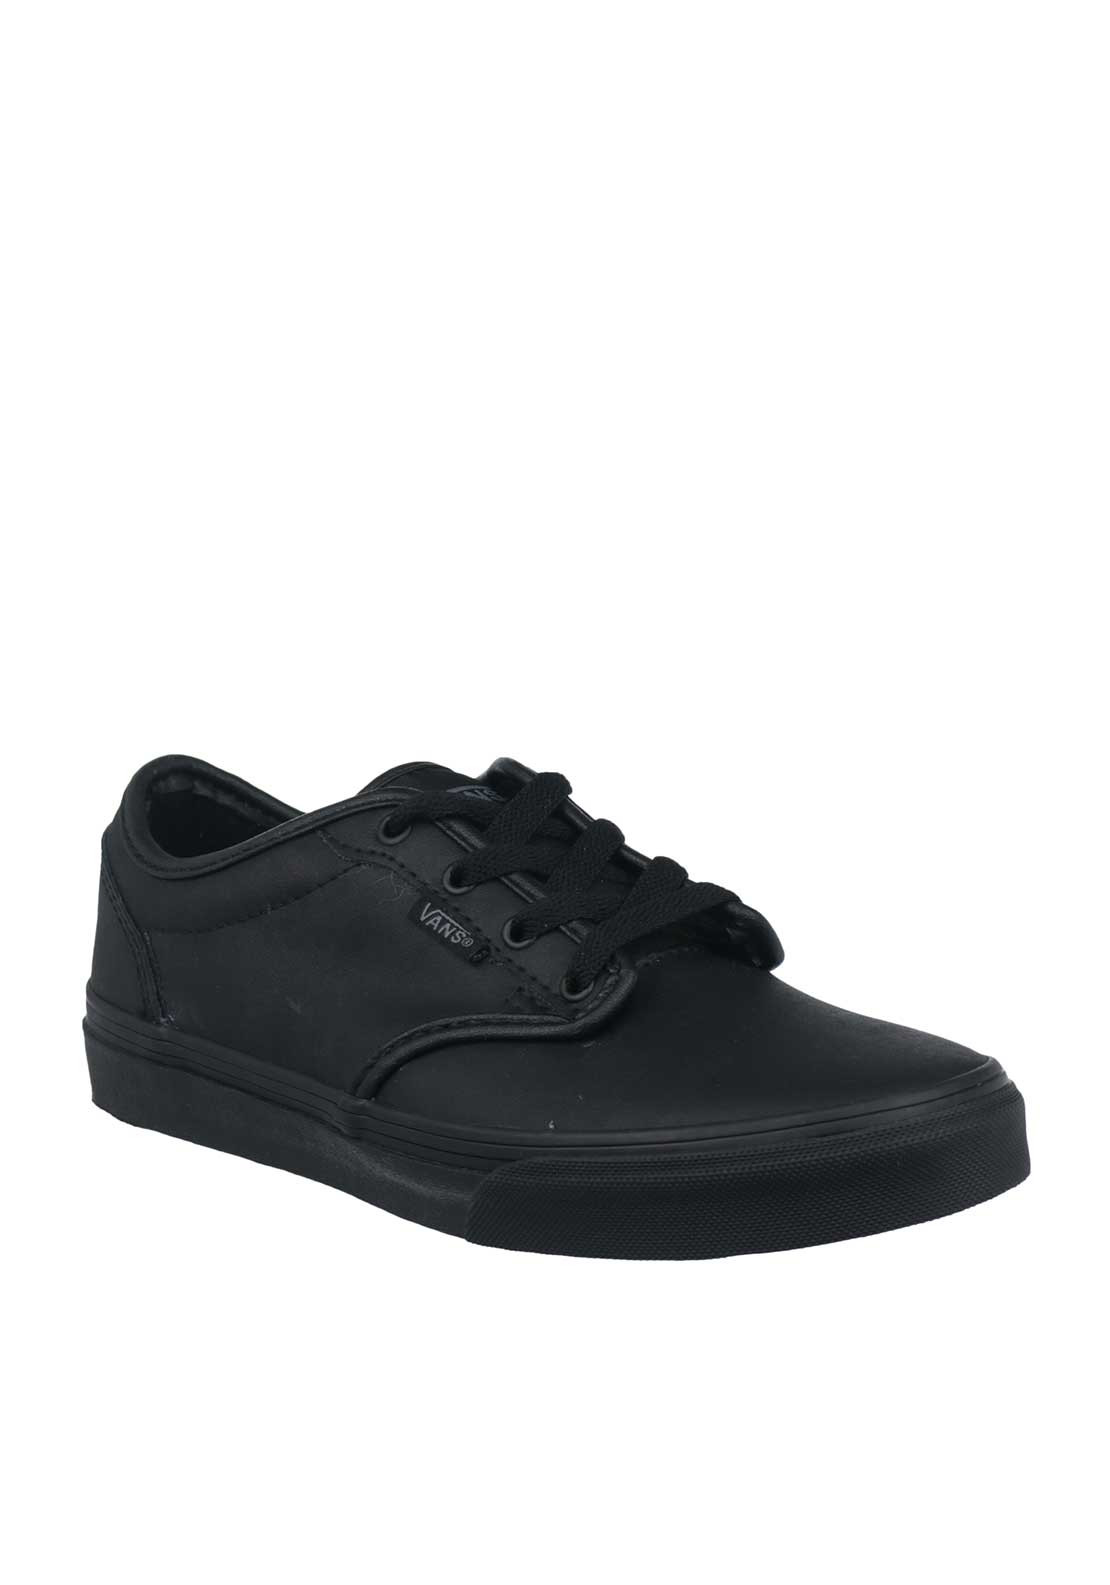 Vans Kids Leather Laced School Shoes, Black